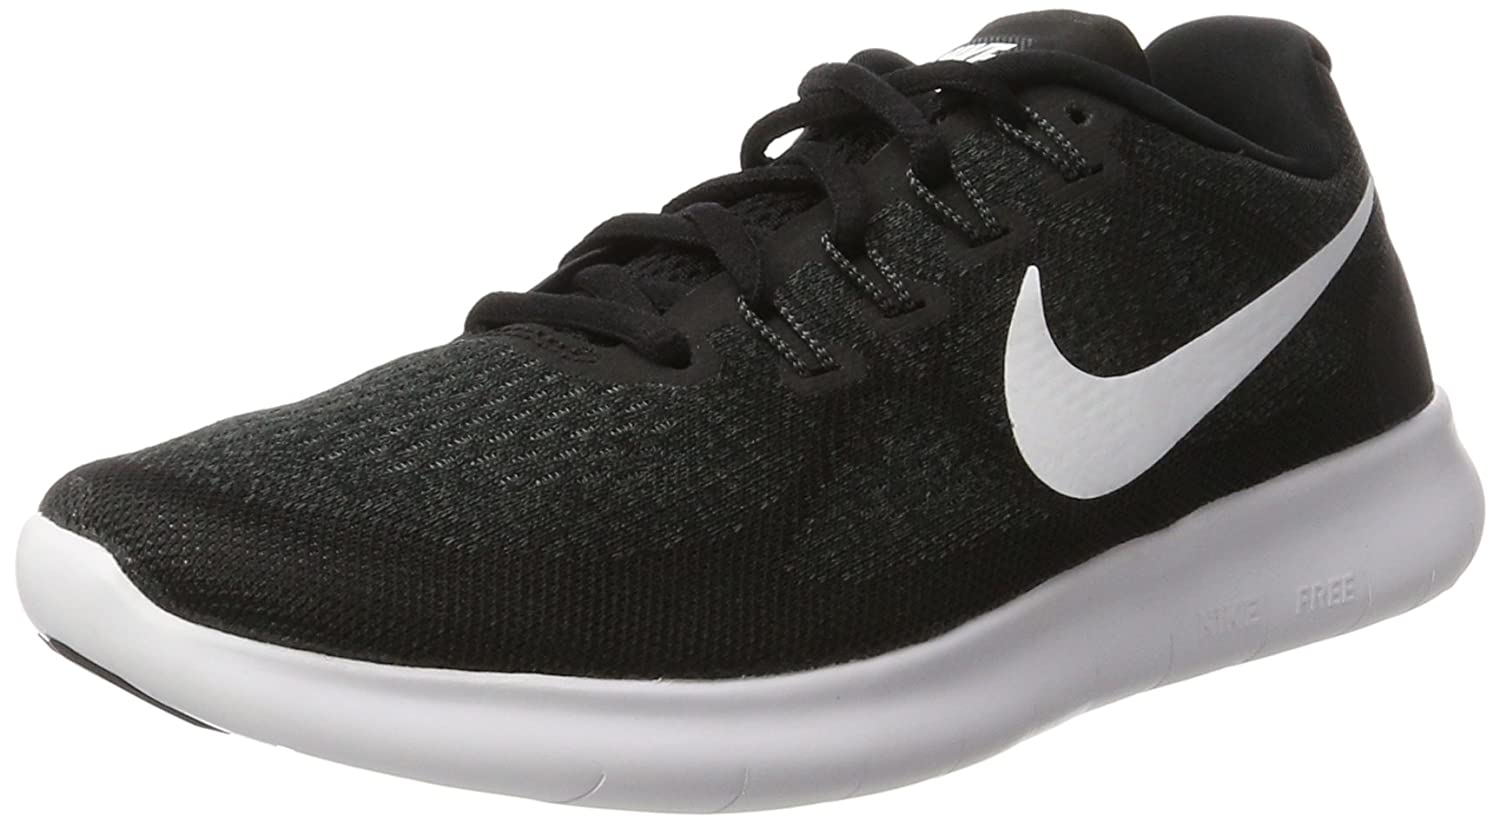 hot sale online 0debc 0549c NIKE Men's Free RN Running Shoe